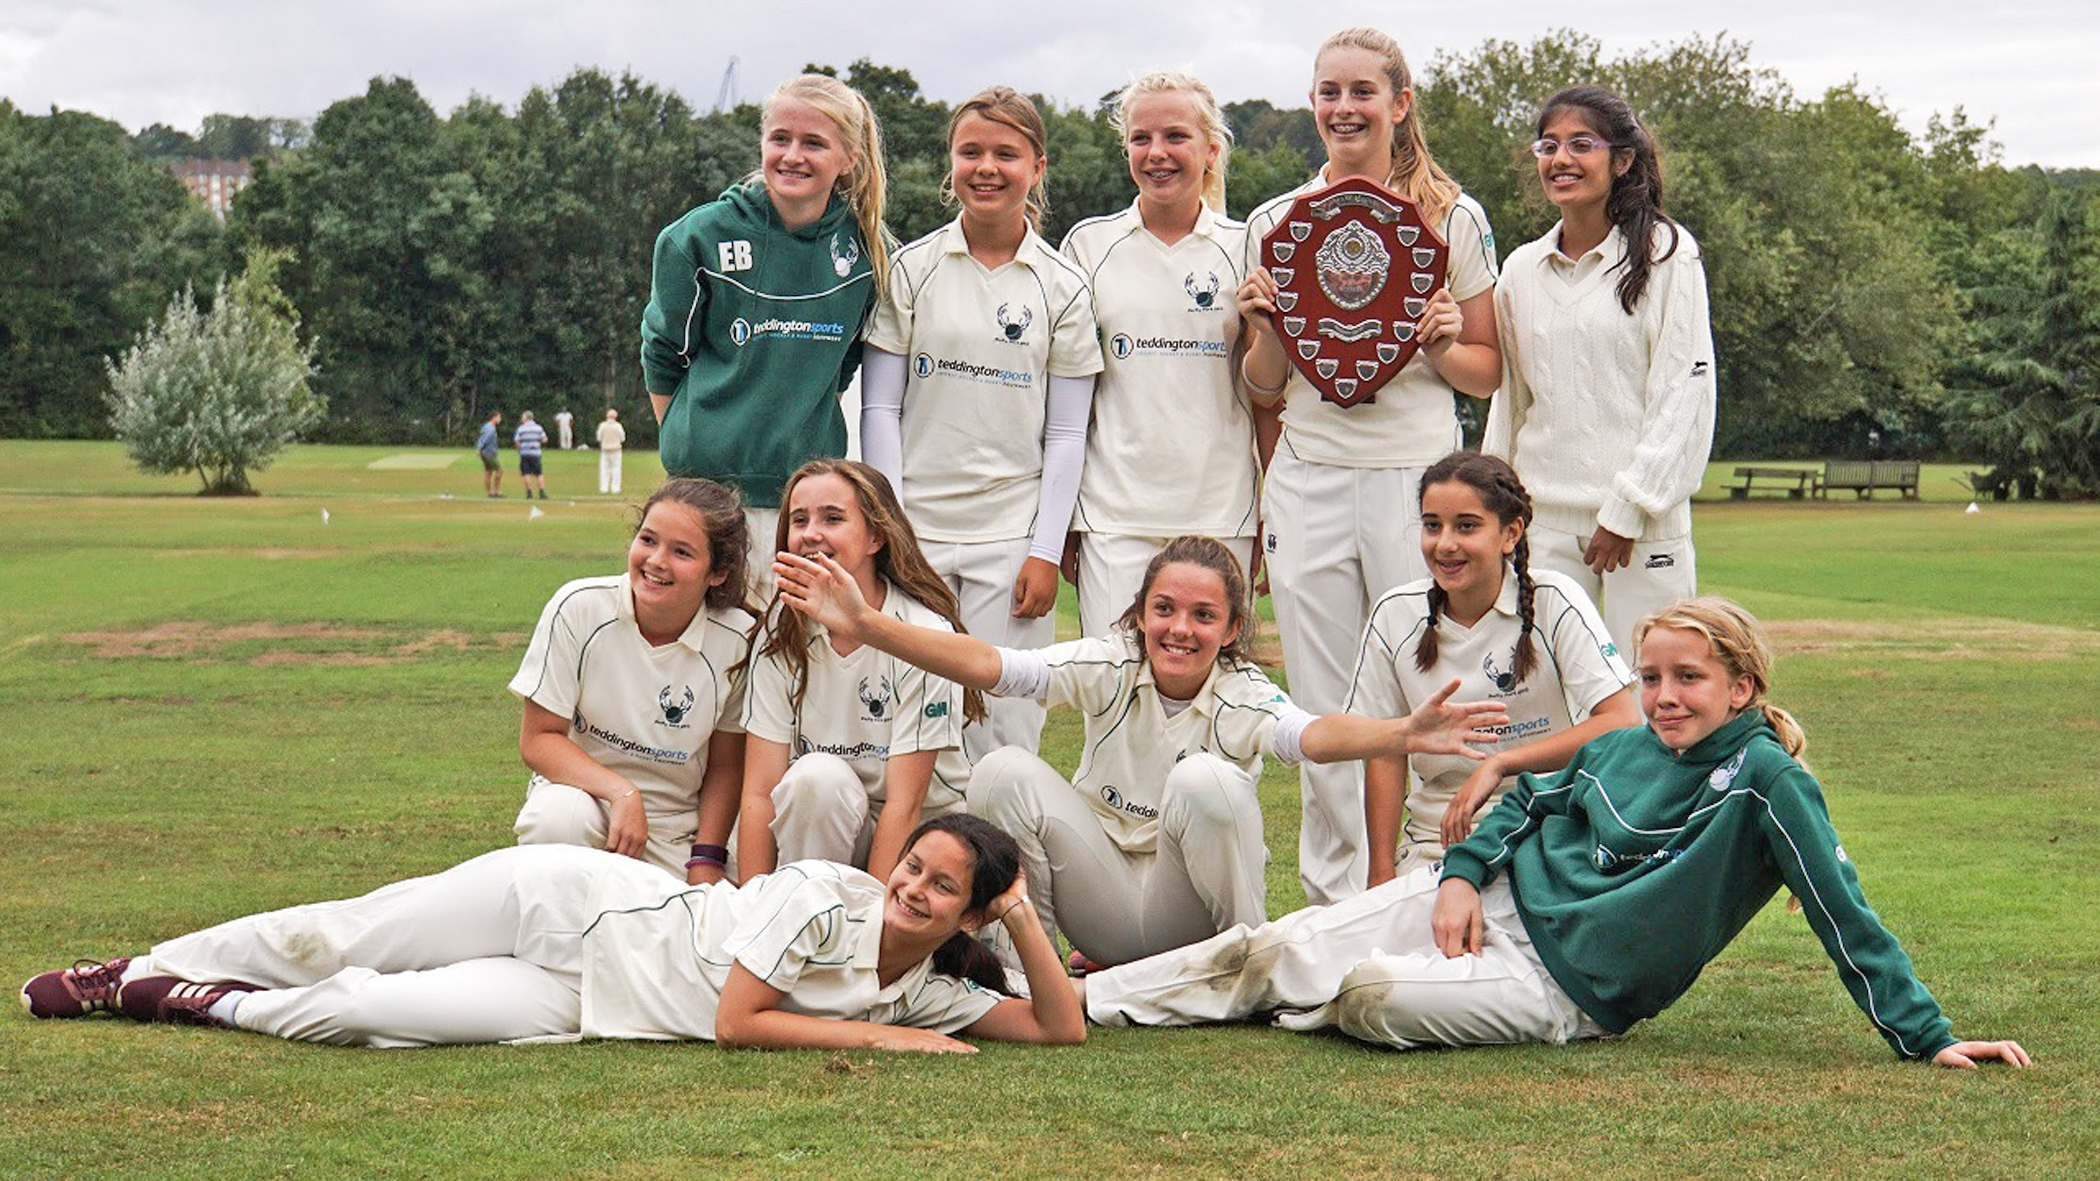 Fruits of their labour: Double county champions celebrate at North London Cricket Club last week